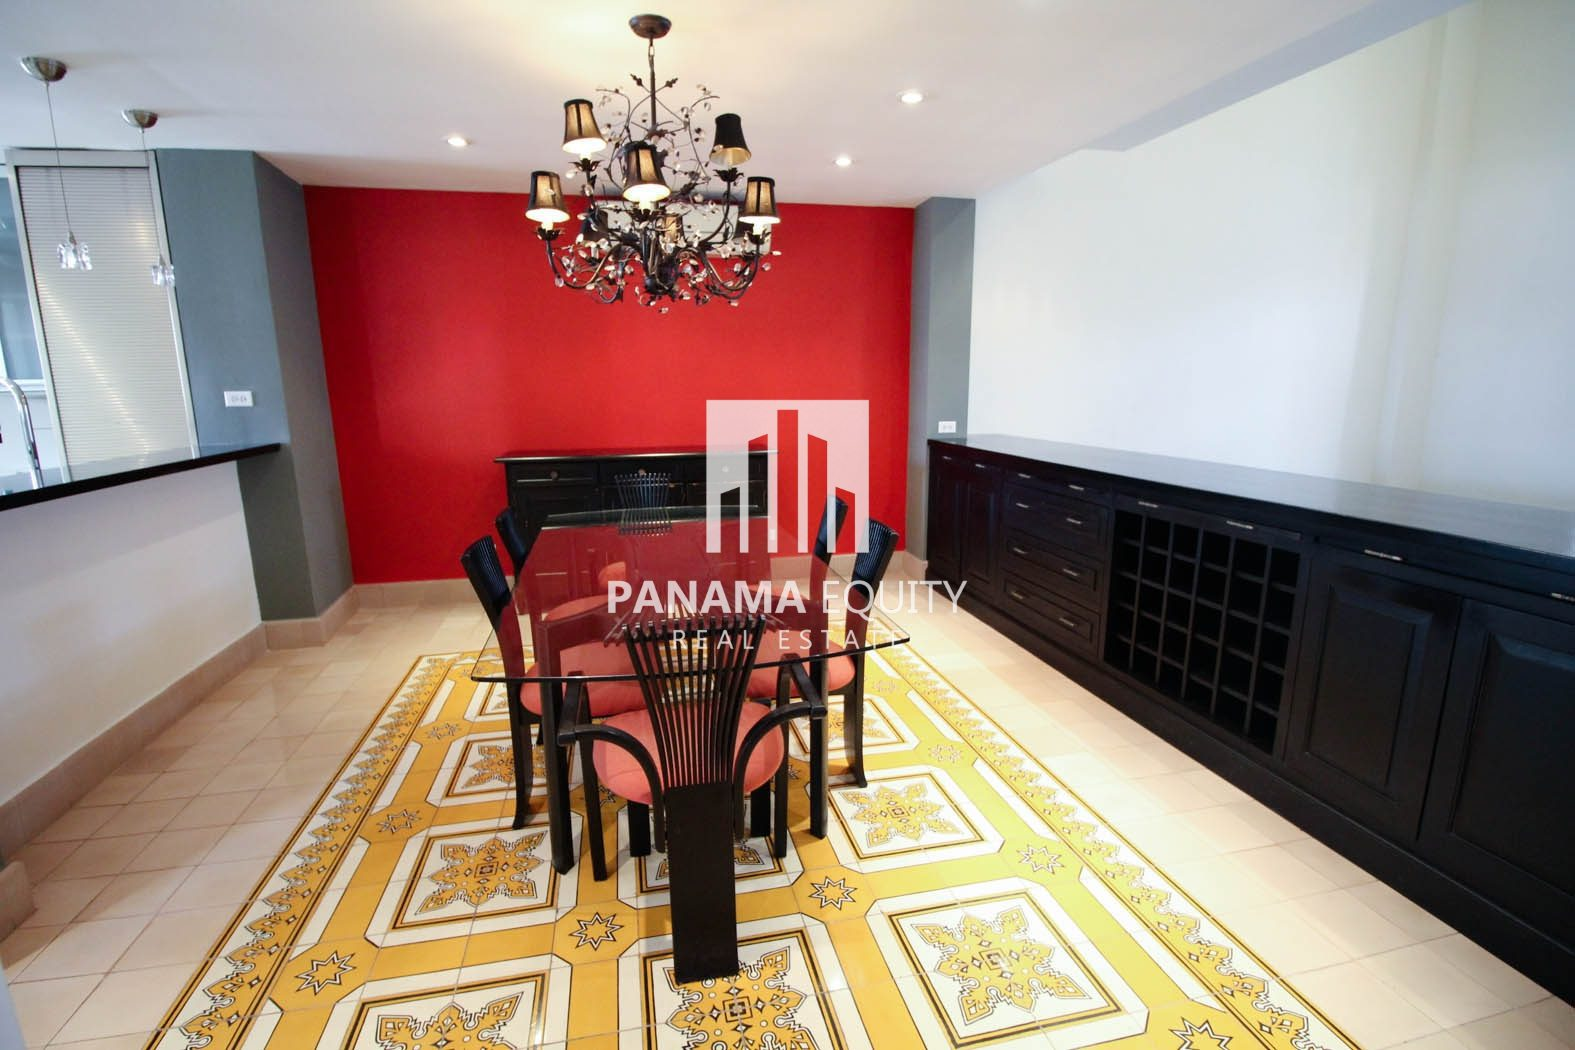 Fabulous Three bedroom Penthouse for rent in Panama's Historic Casco Viejo